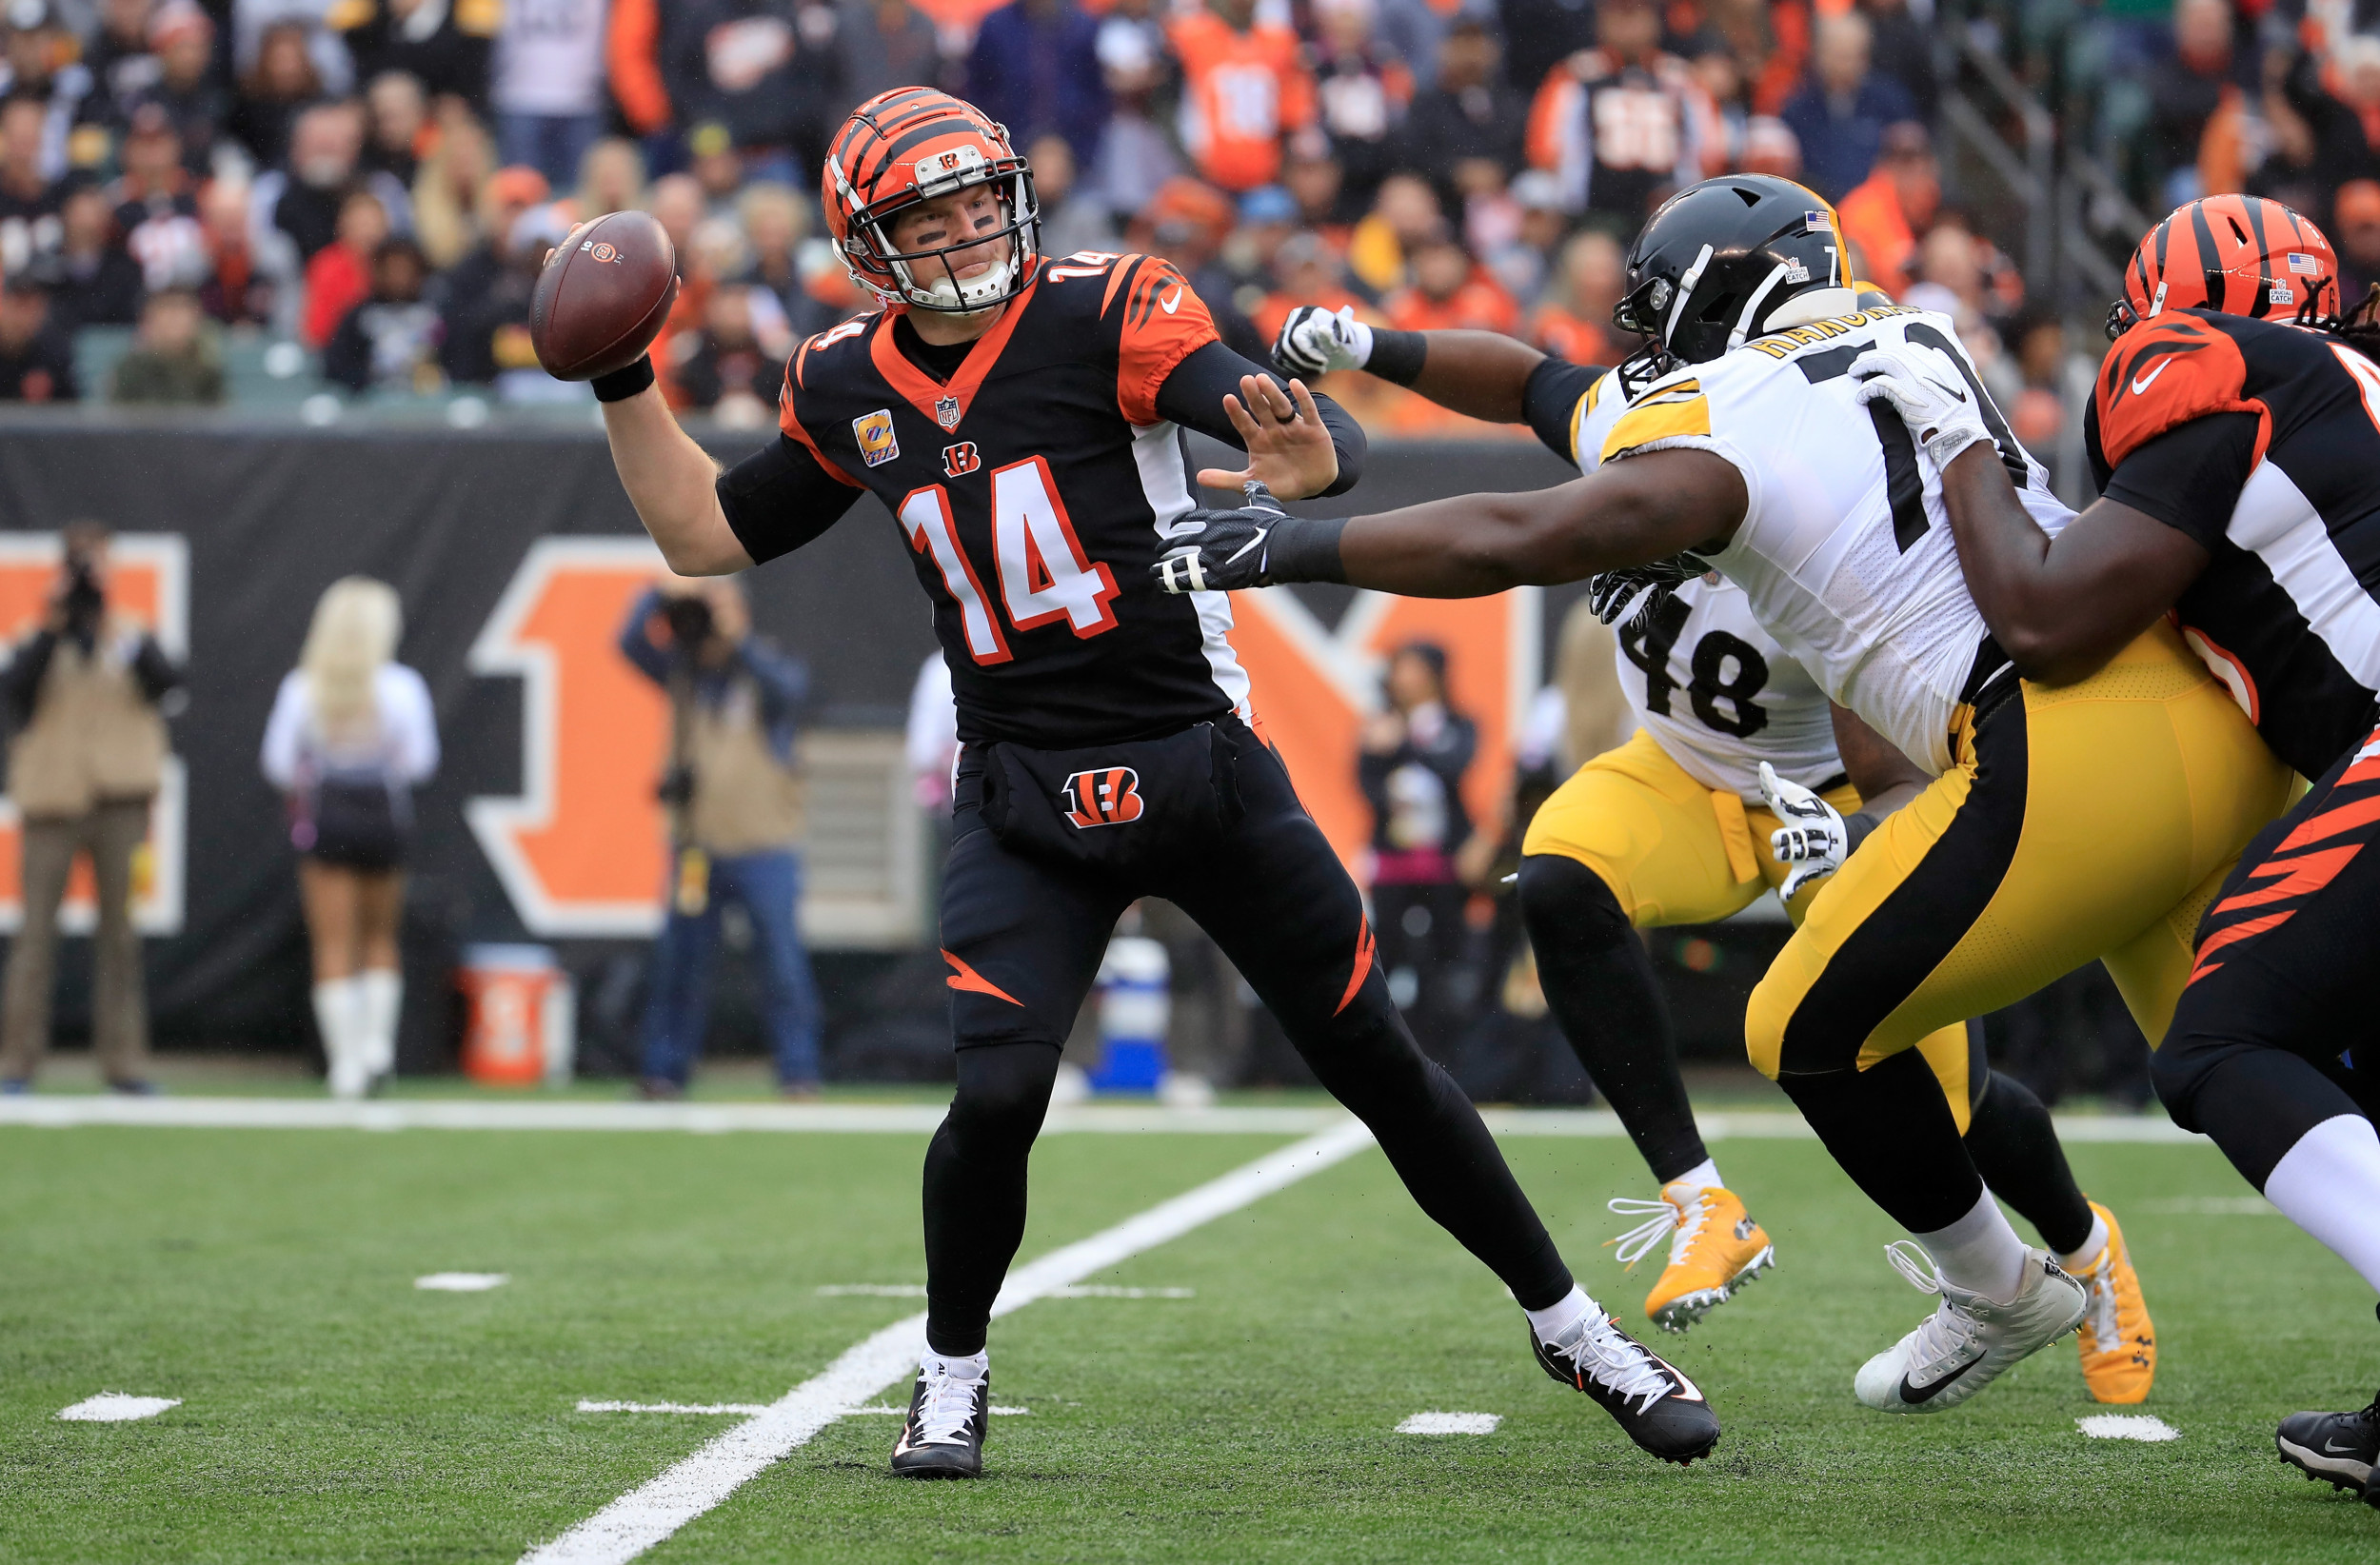 Nfl Monday Night Football Where To Watch Cincinnati Bengals